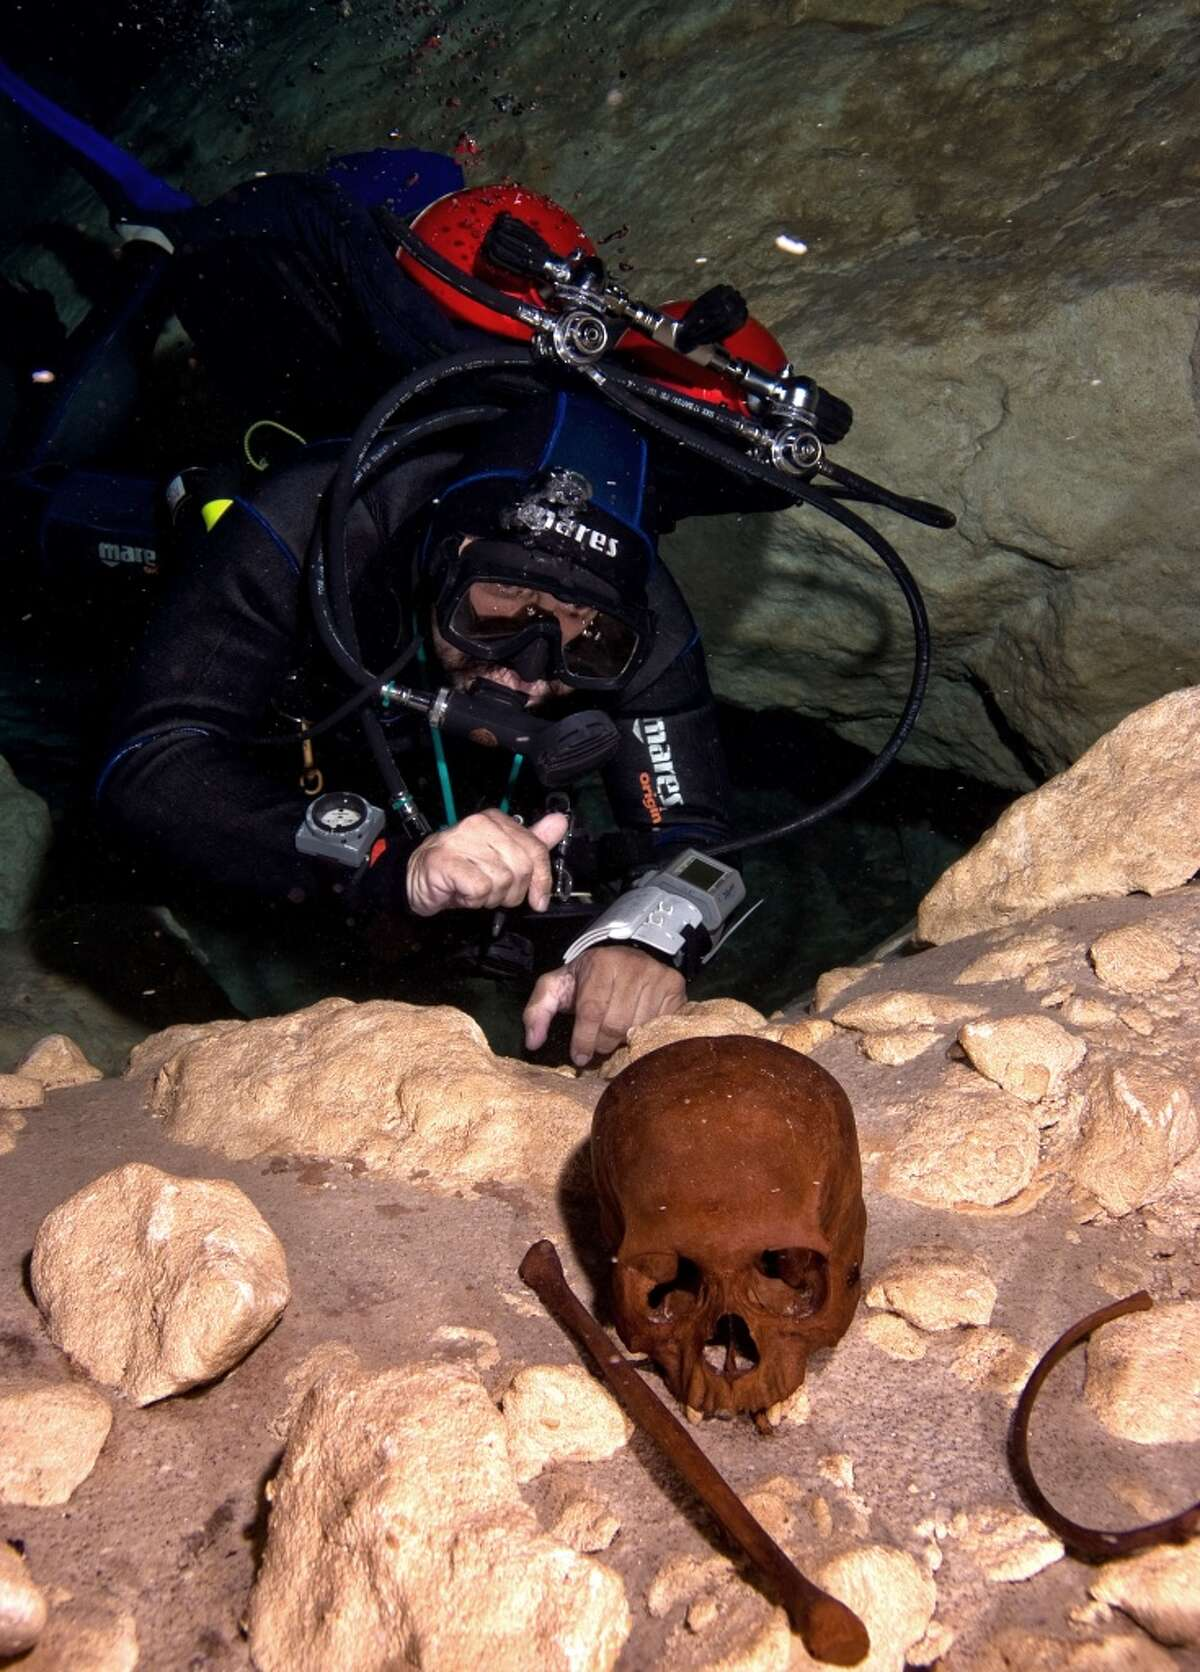 Guillermo de Anda, dives in a cenote filled with Mayan artifacts, inspects sacrificial remains near Homum in Yucatan, Mexico.